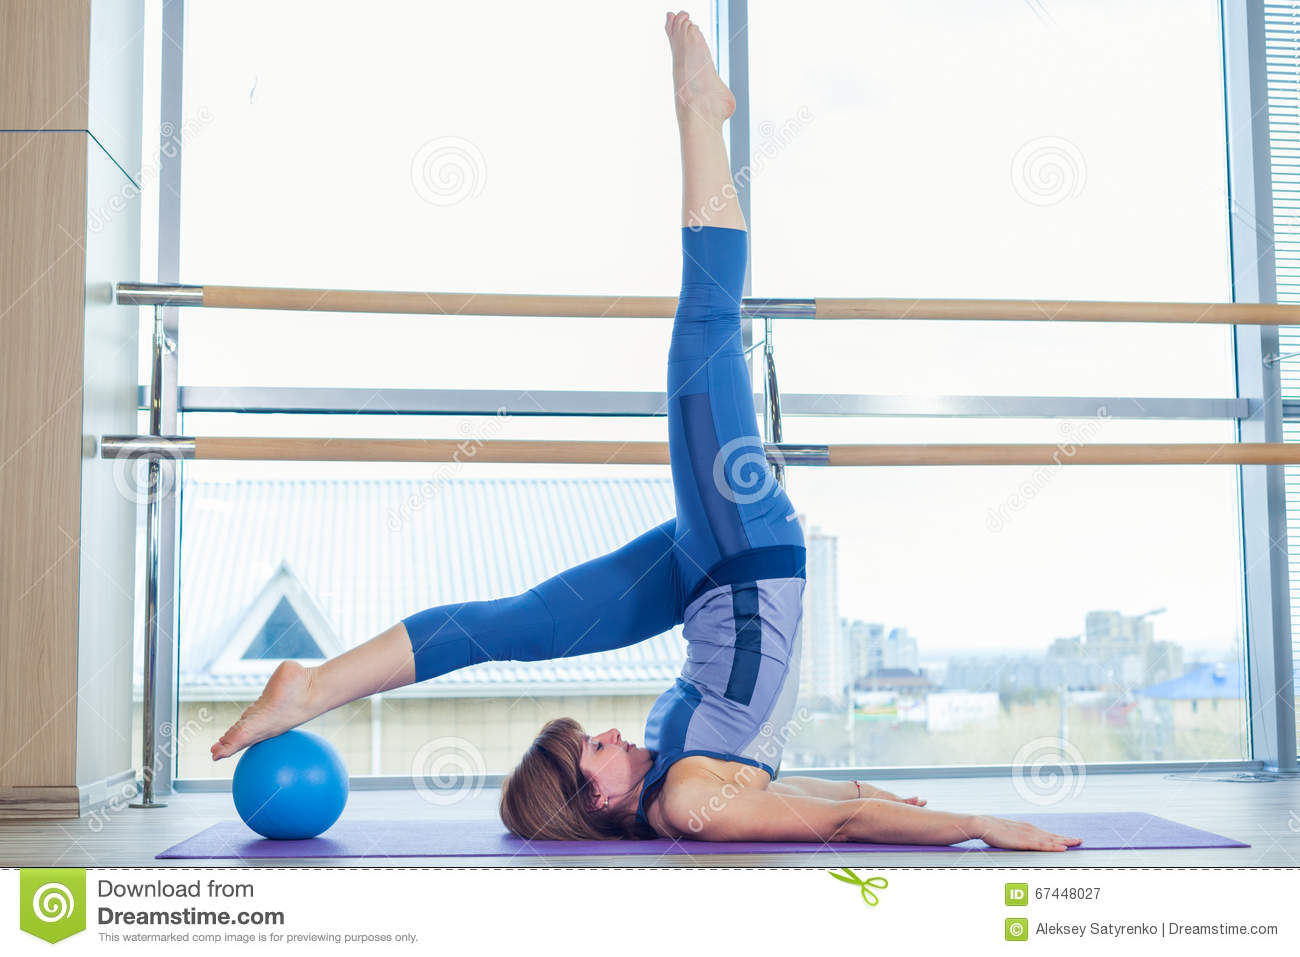 Pilates woman stability ball exercise workout at gym for Gimnasio pilates